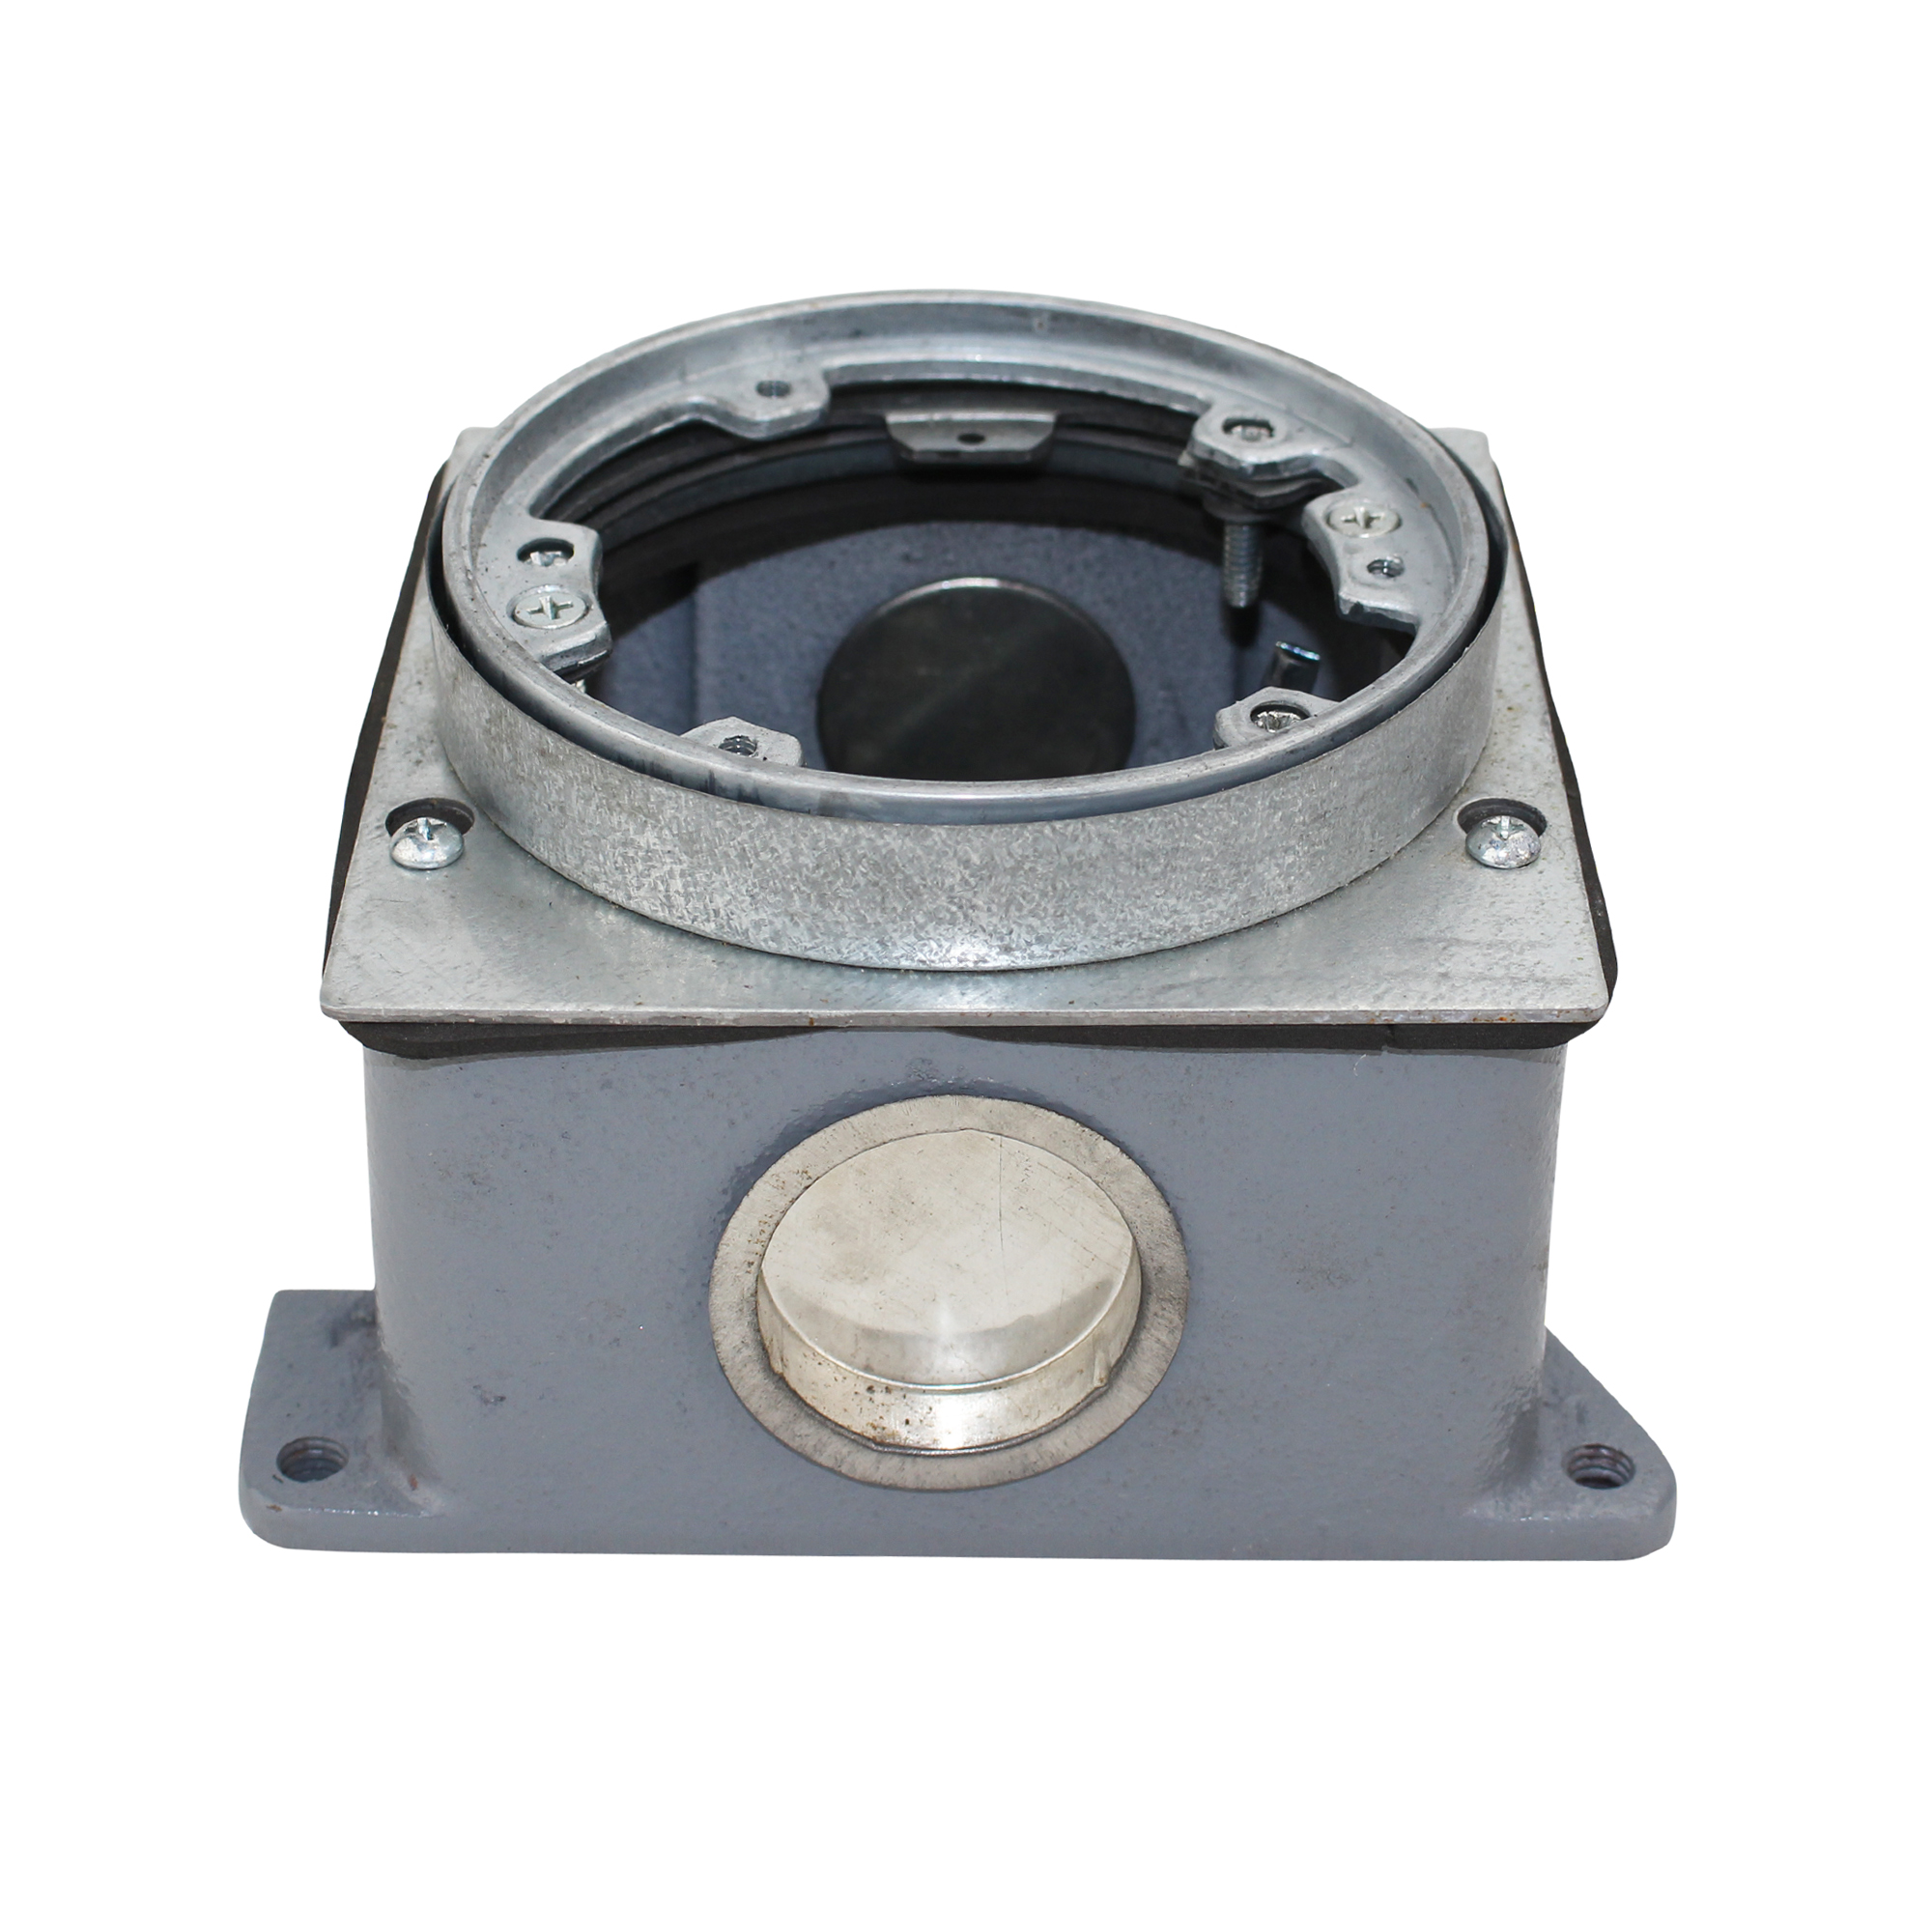 wiremold legrand 889b cast-iron floor box, outlet box, cast iron